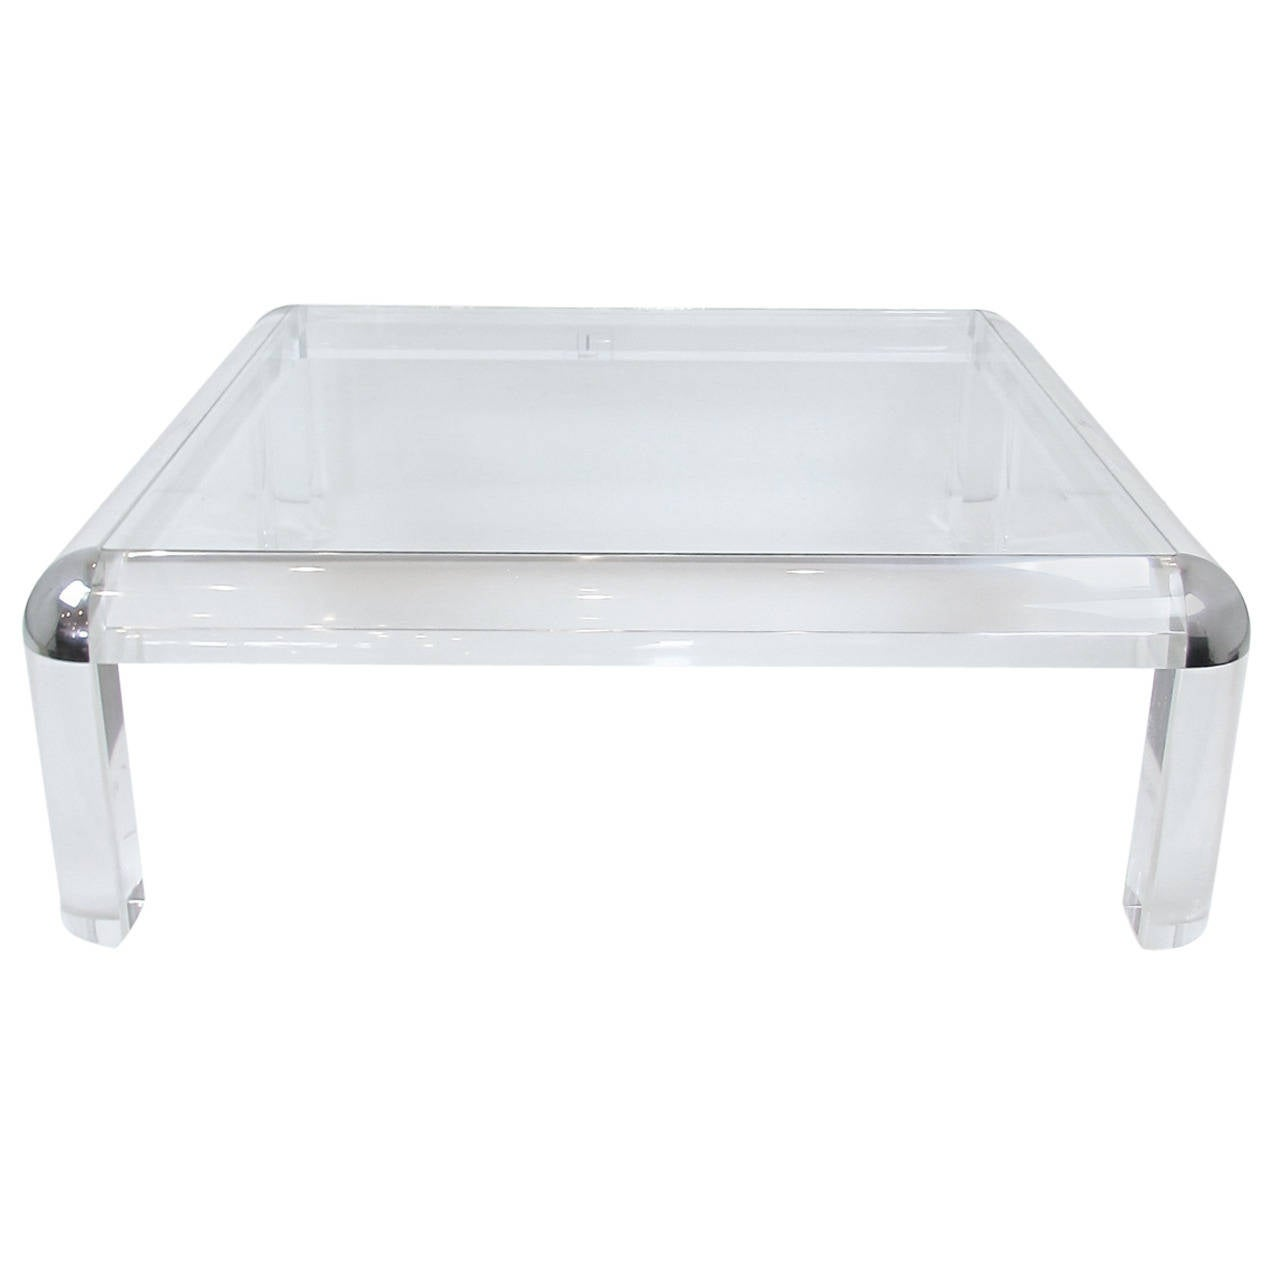 Karl Springer Style Acrylic And Chrome Coffee Table At 1stdibs